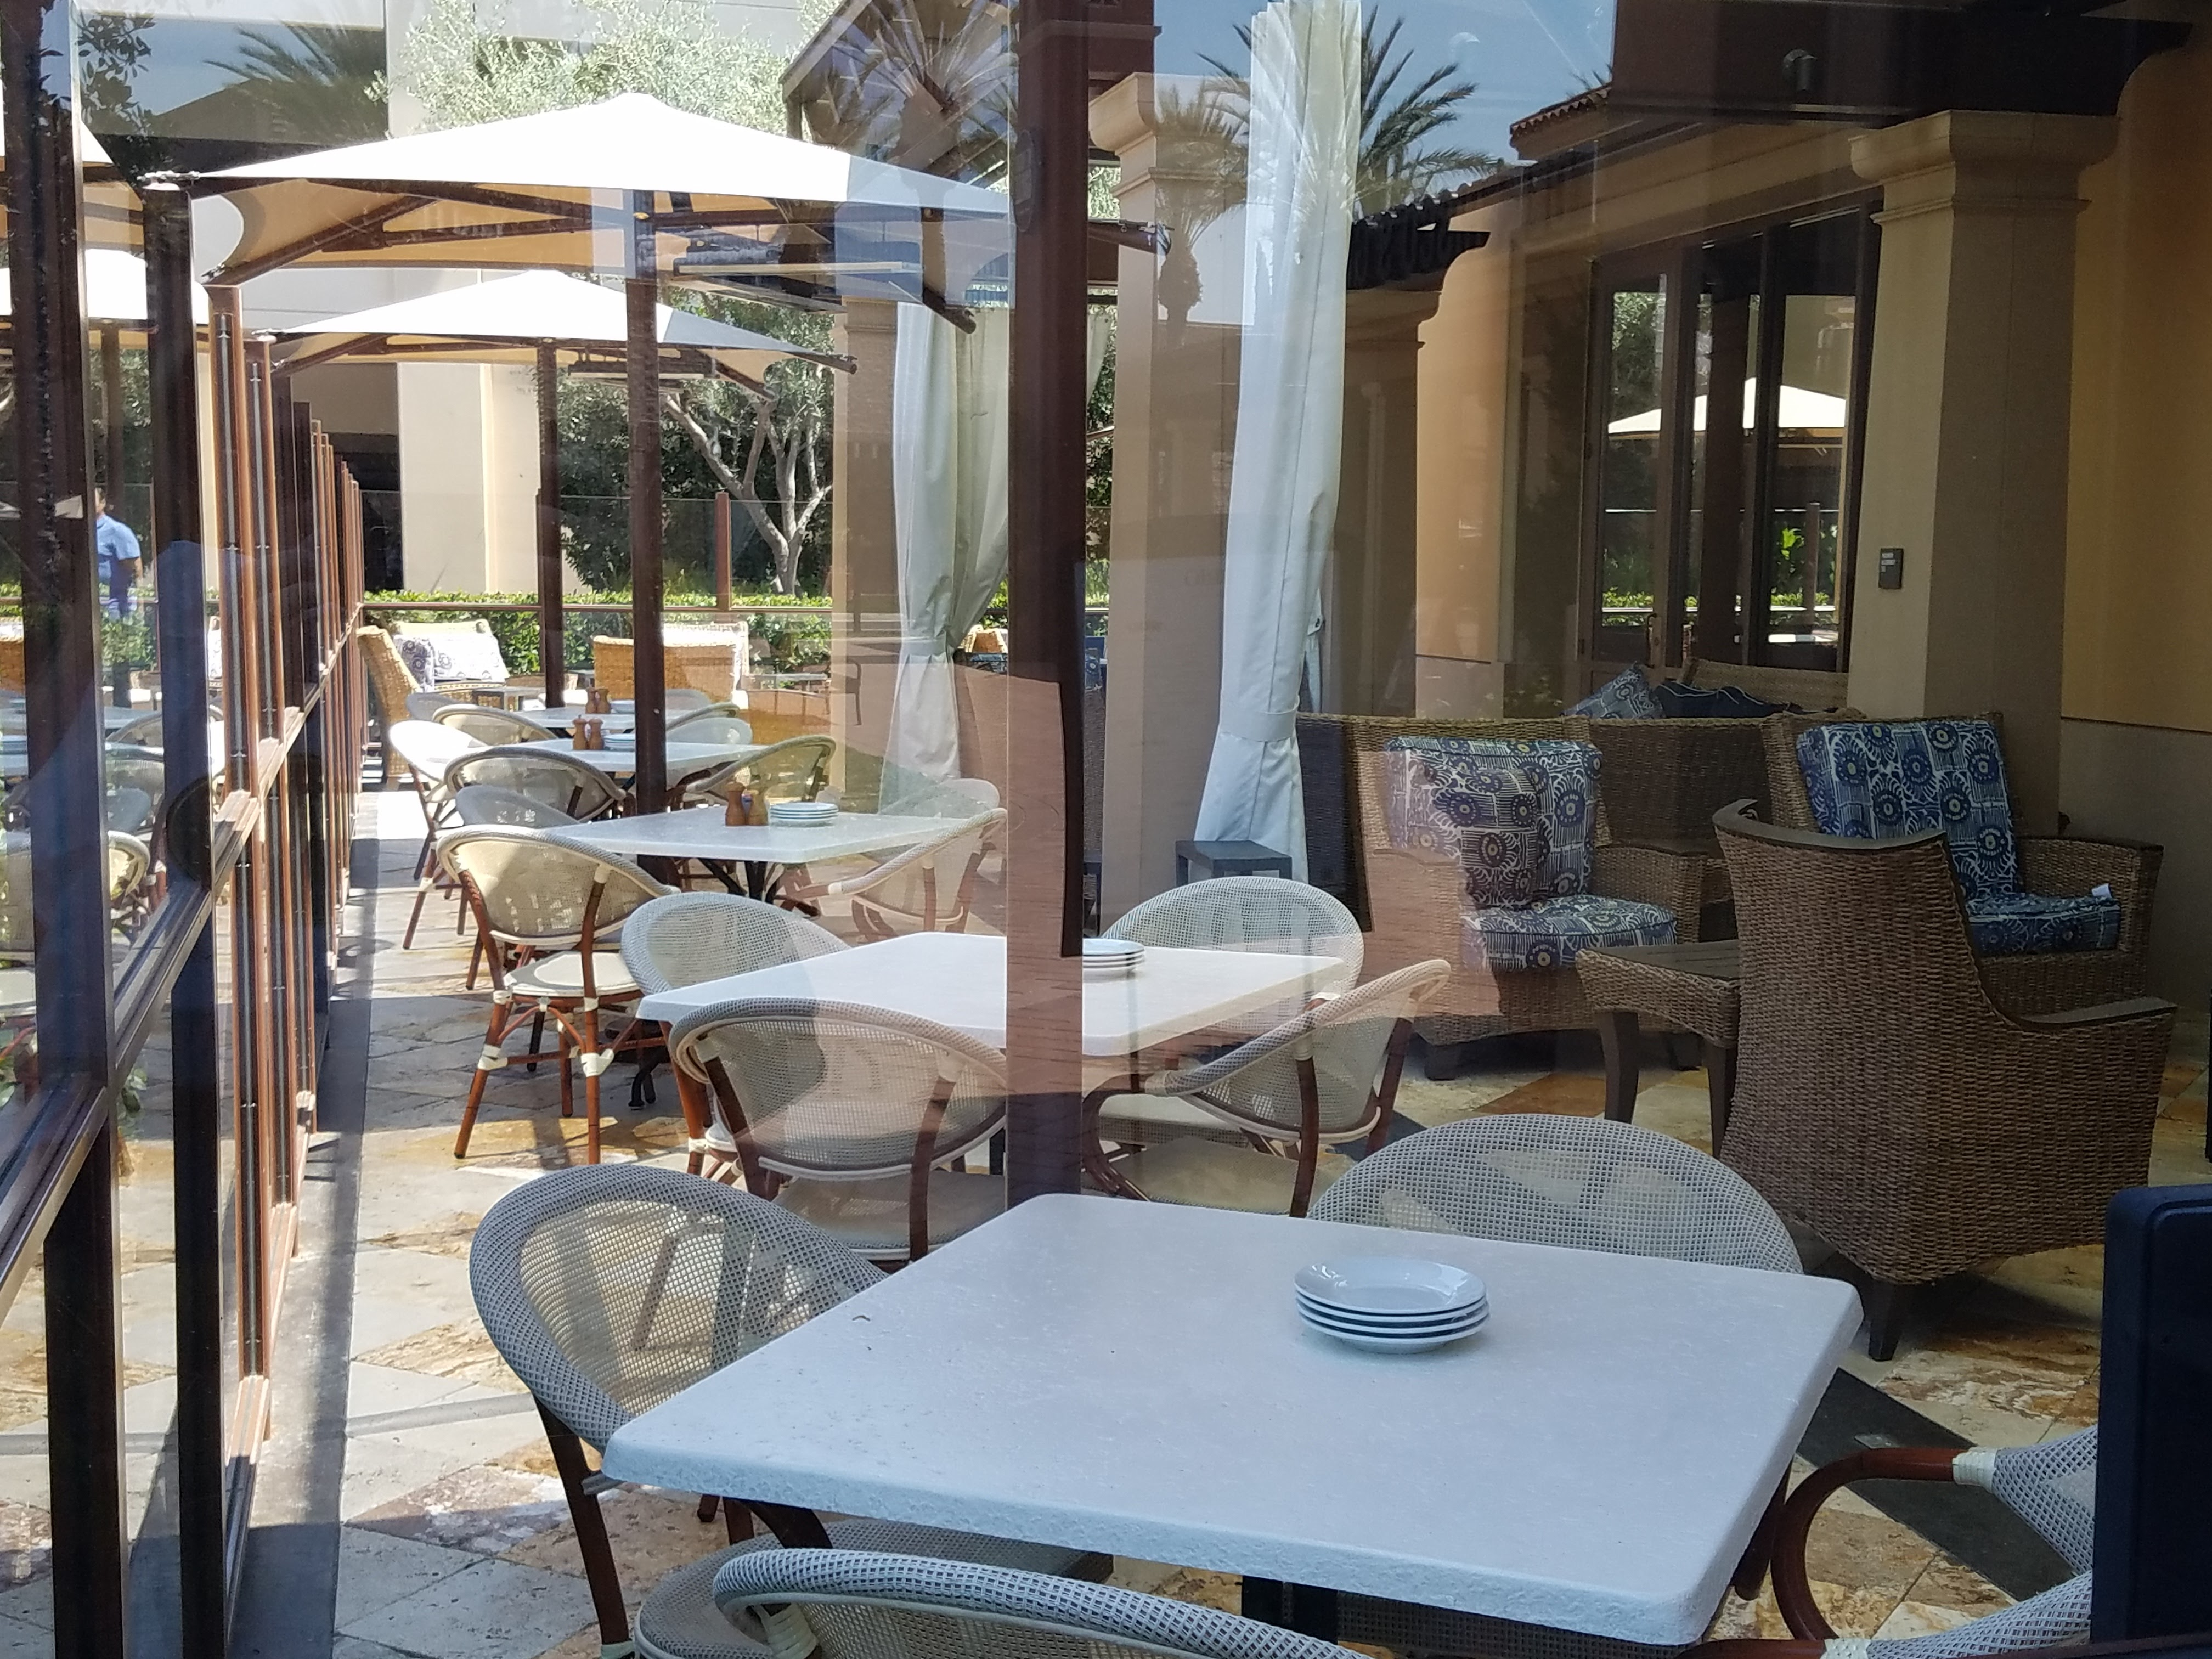 e of the outdoor dining patios – Brio Tuscan Grille – Irvine